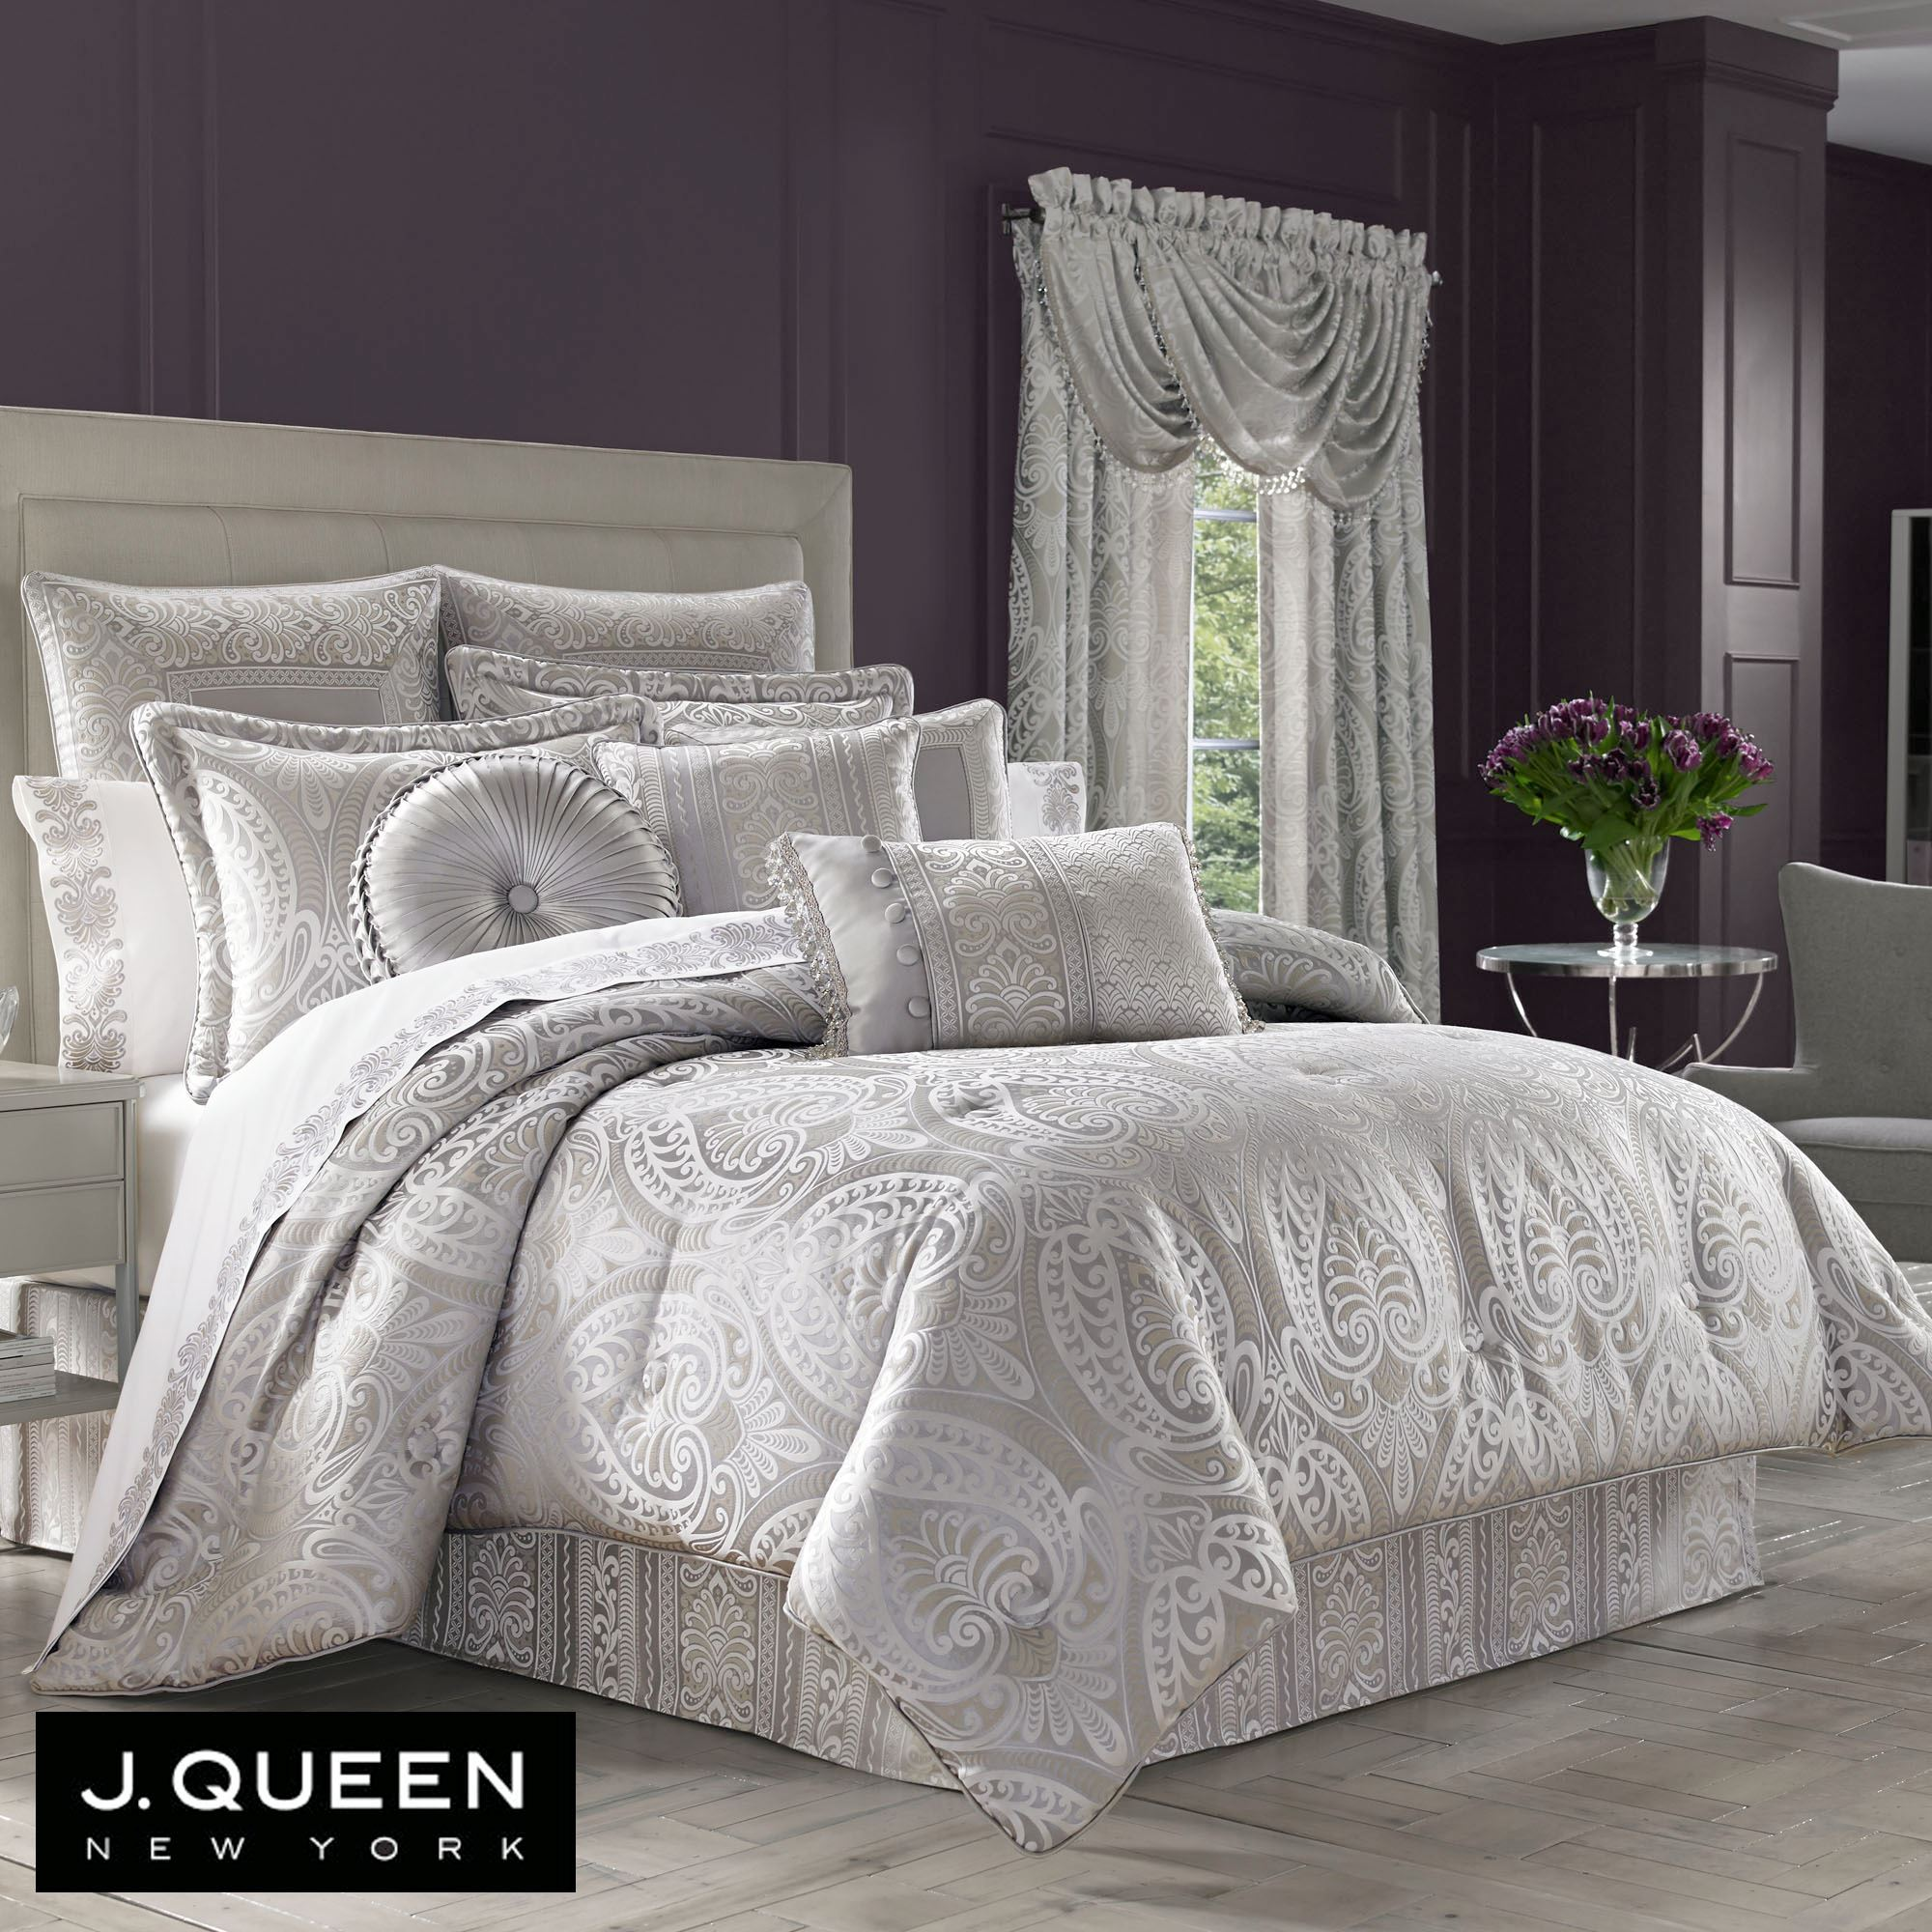 silver curtains set comforter itm bedding bed duvet or bedspread quilt luxury gatsbyduvetcoverl grey cover